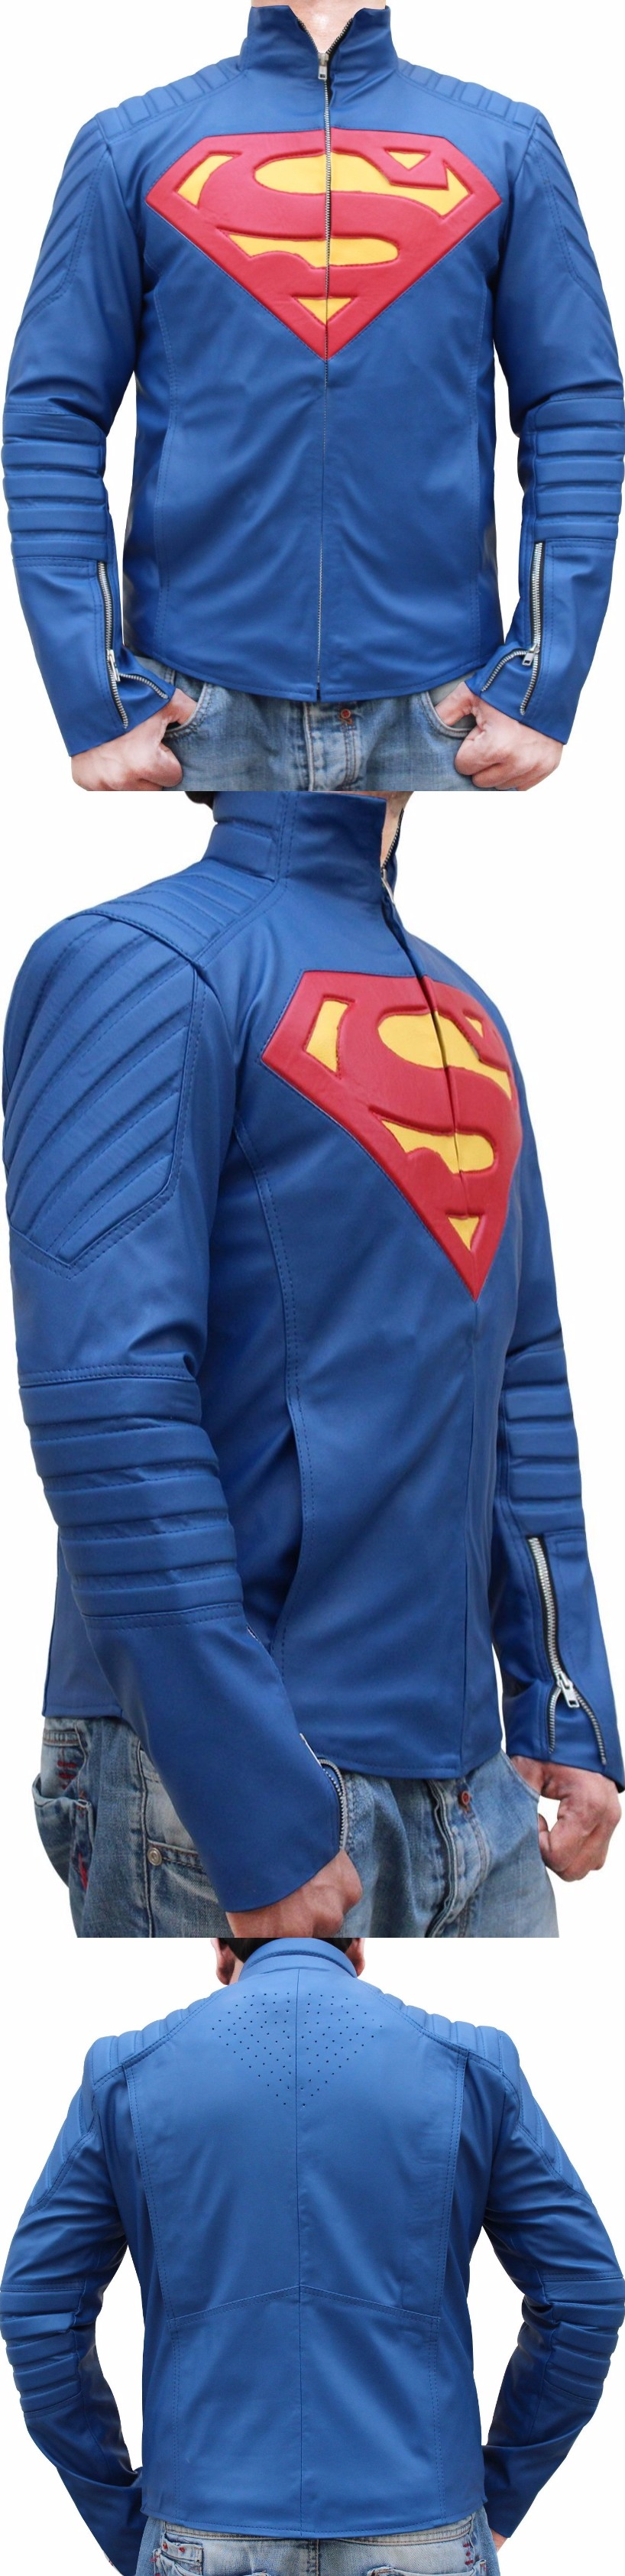 This terrific Superman jacket worn by Henry Cavill as